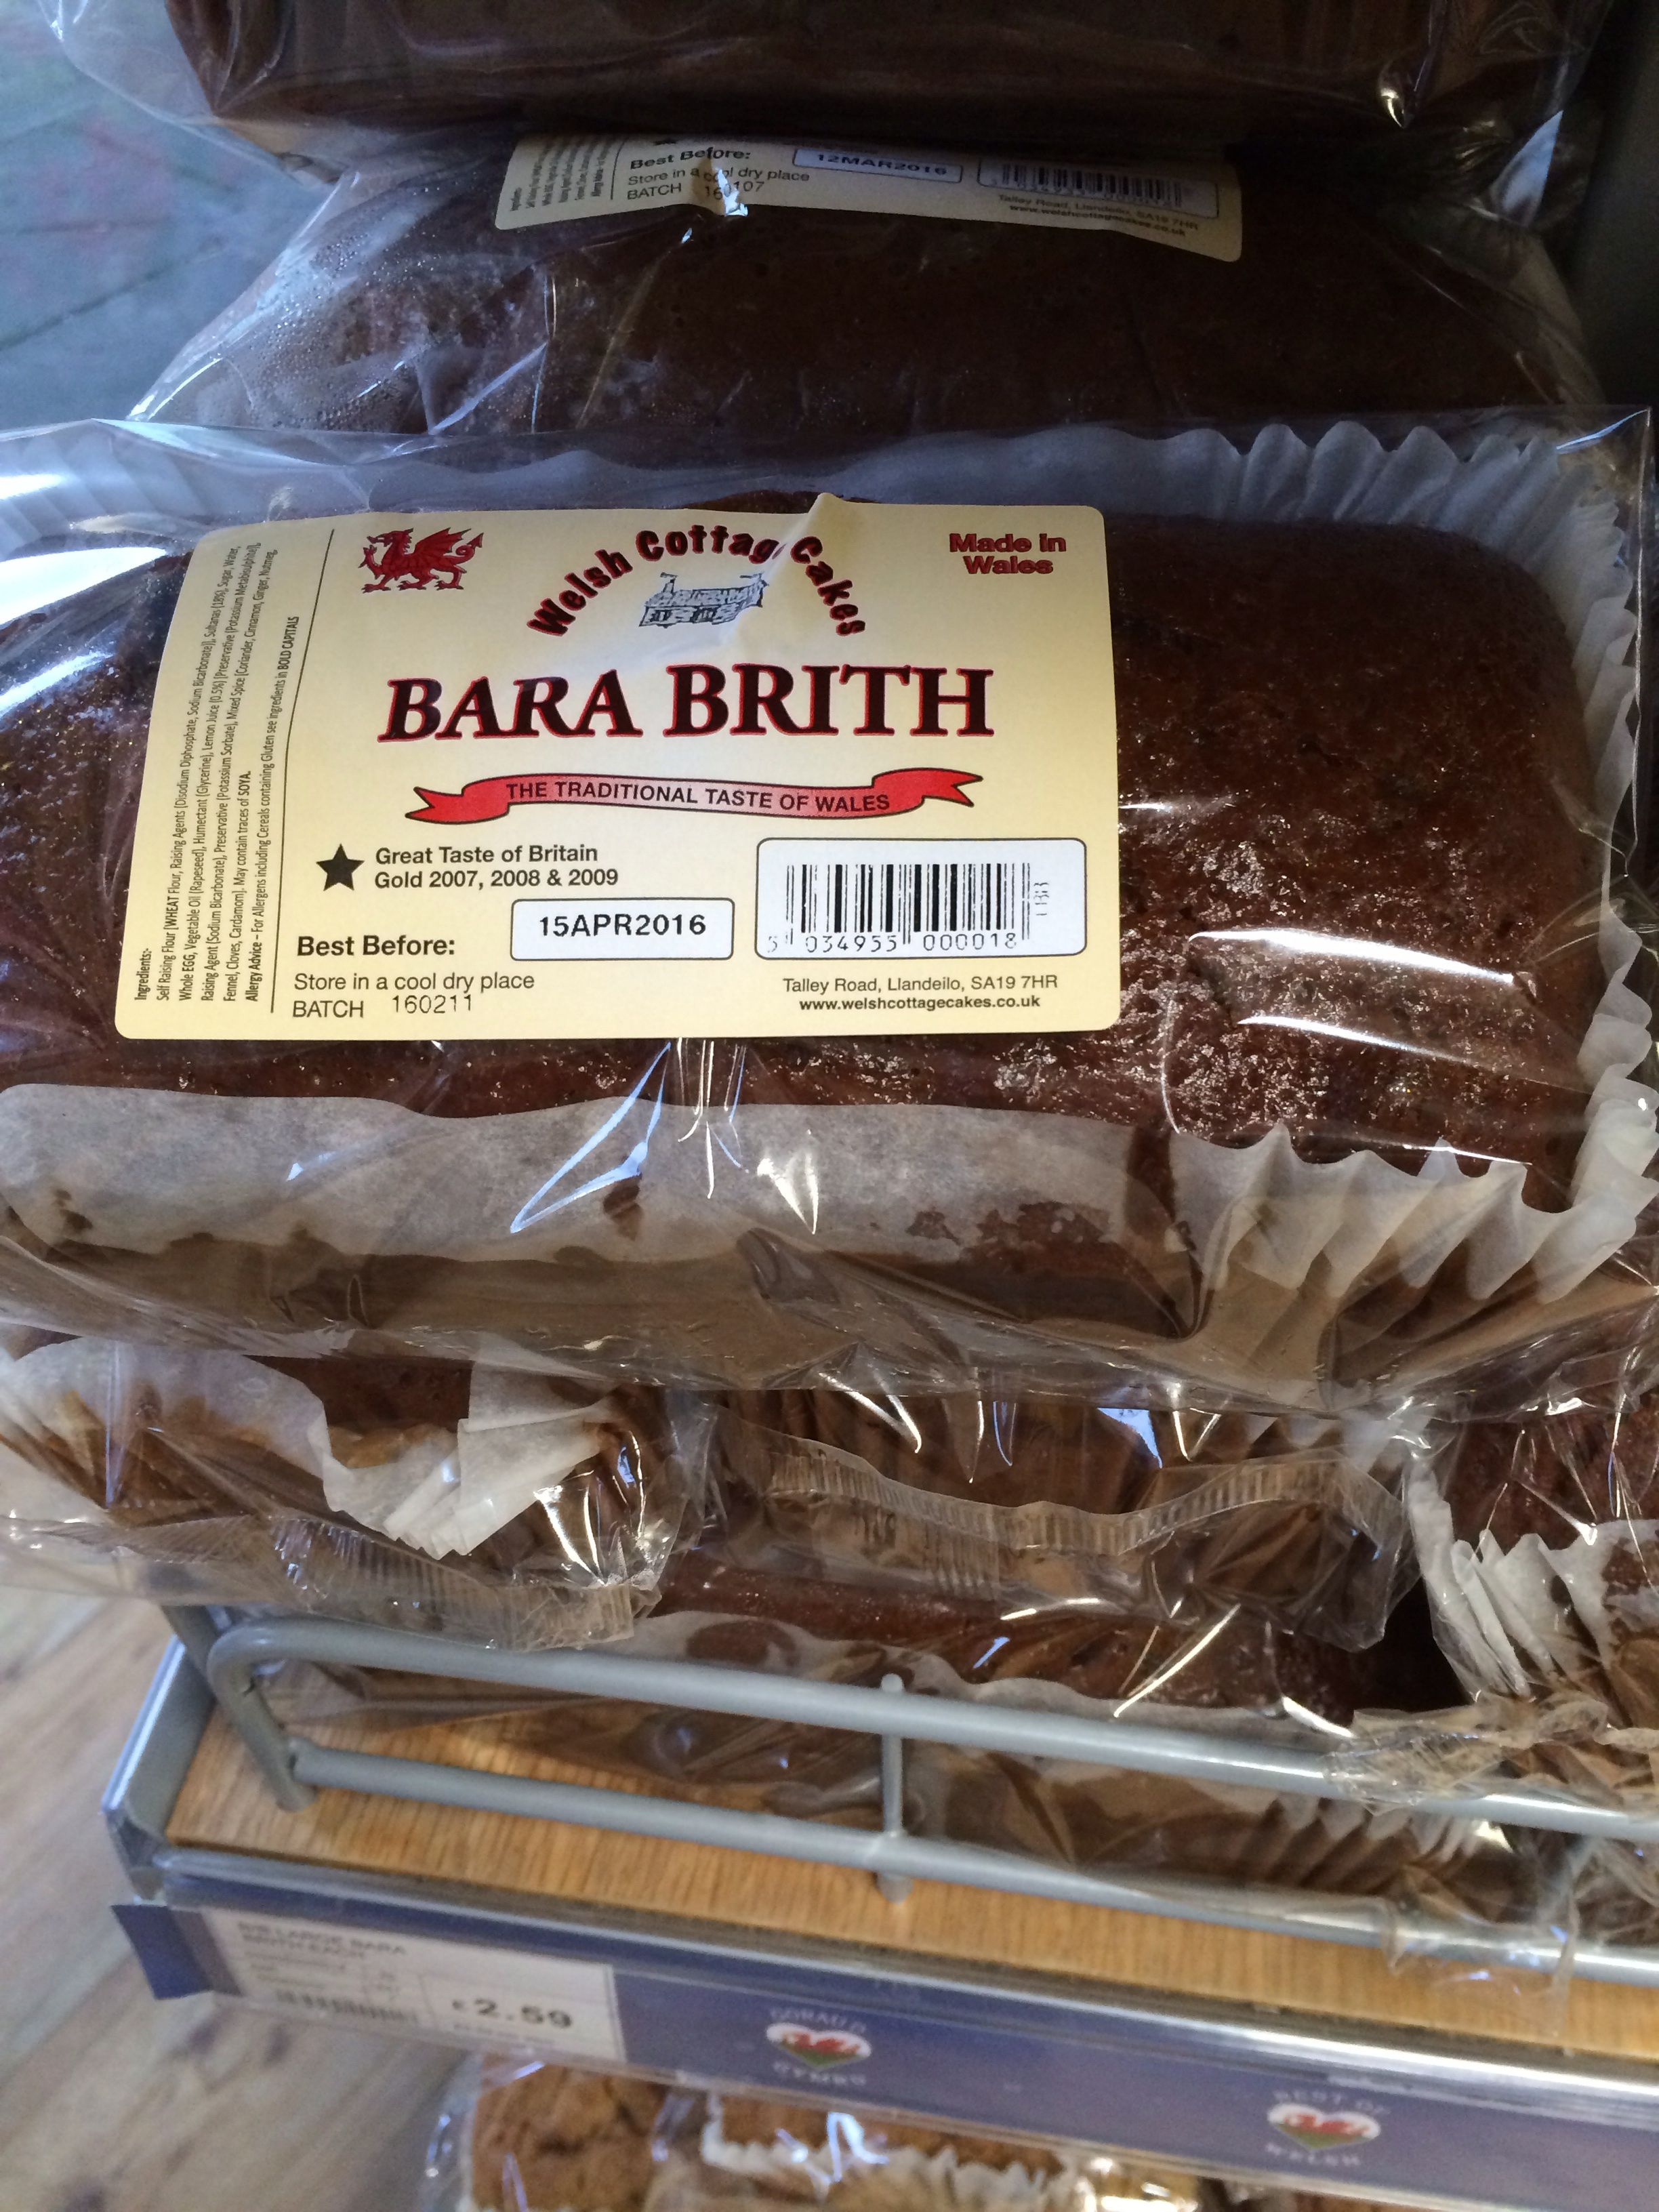 File Bara Brith Cake Produced By Welsh Cottage Cakes Jpg Wikimedia Commons